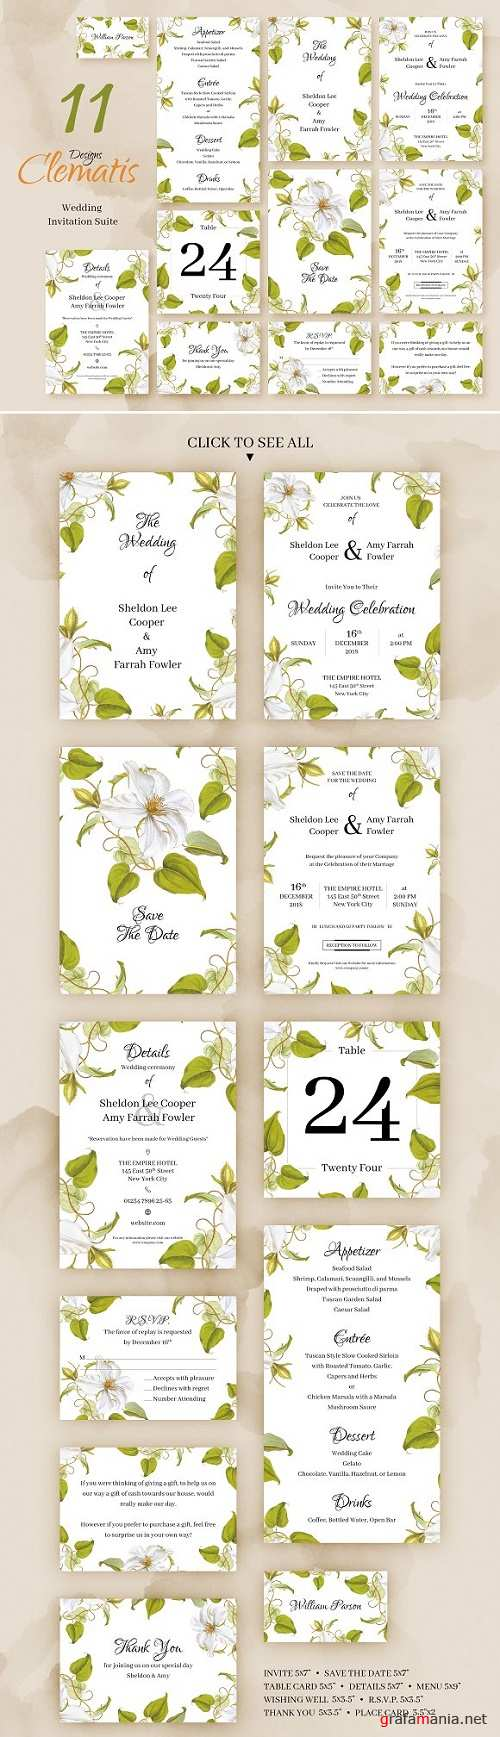 Clematis.Wedding Invitation - 2346947